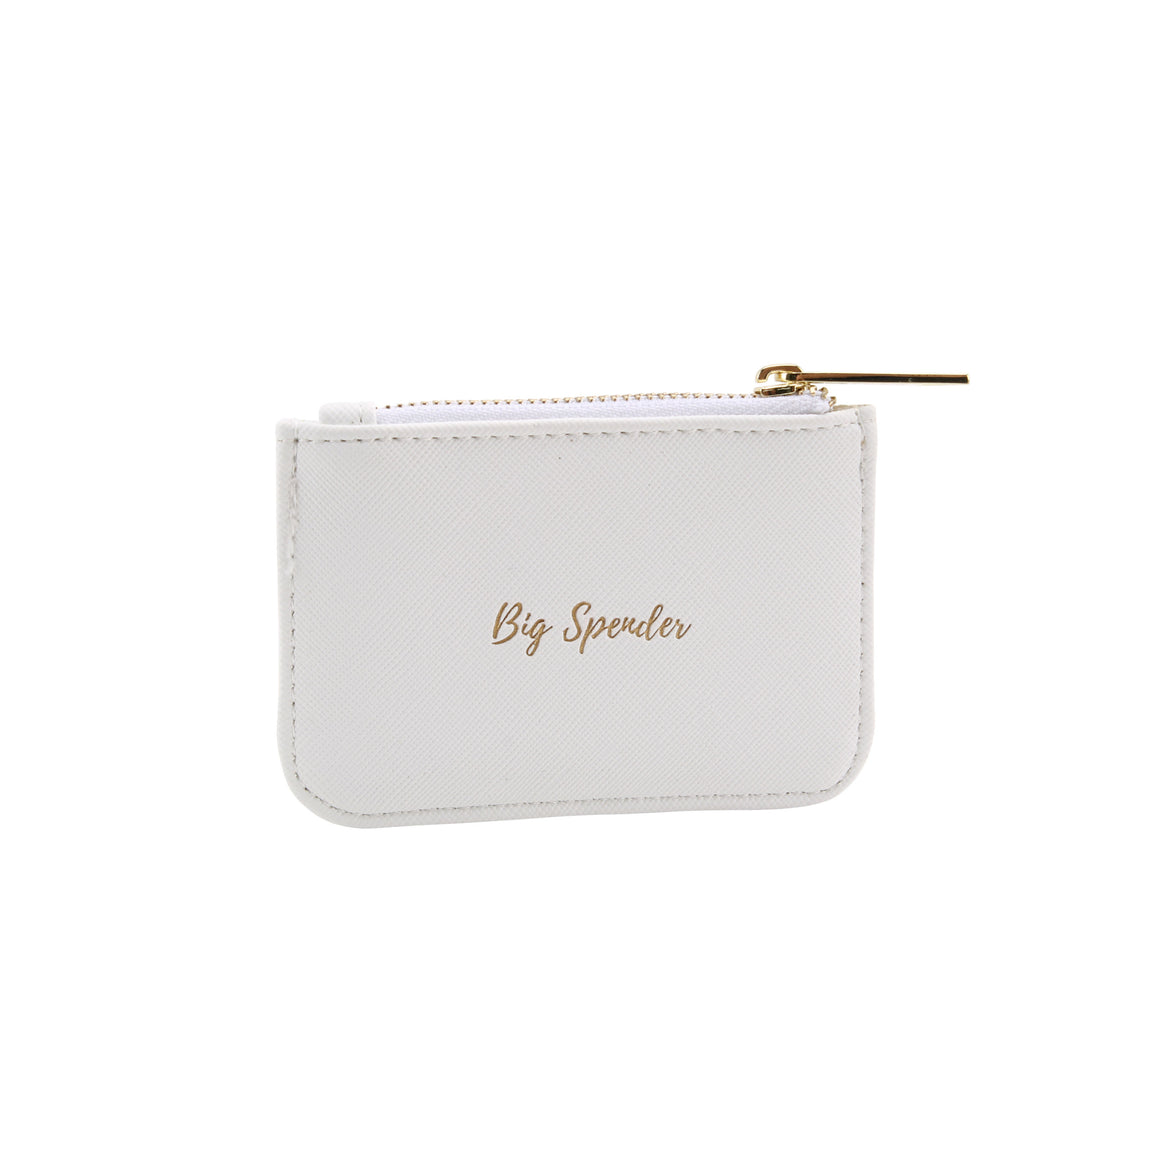 Willow & Rose 'Big Spender' White Coin Purse - The Love Trees